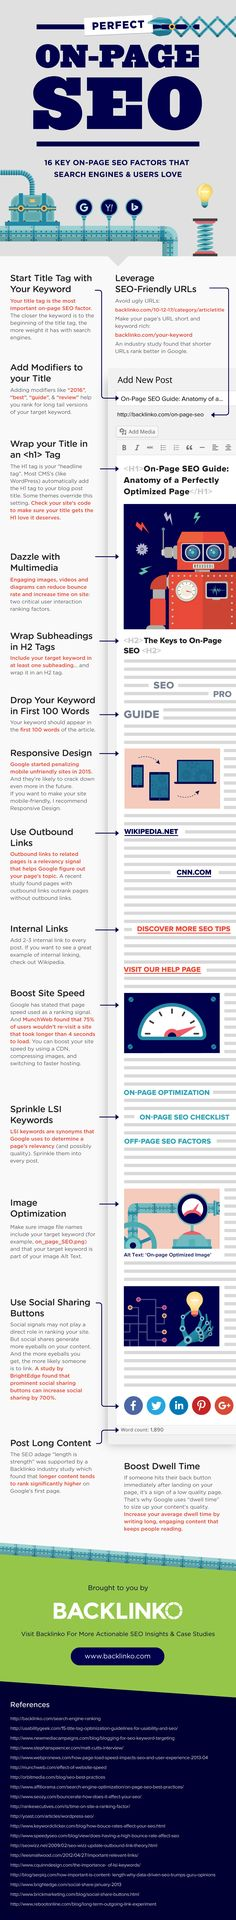 Perfect On-Page SEO: 16 Key On-Page SEO Factors That Search Engines And Users Love [INFOGRAPHIC]